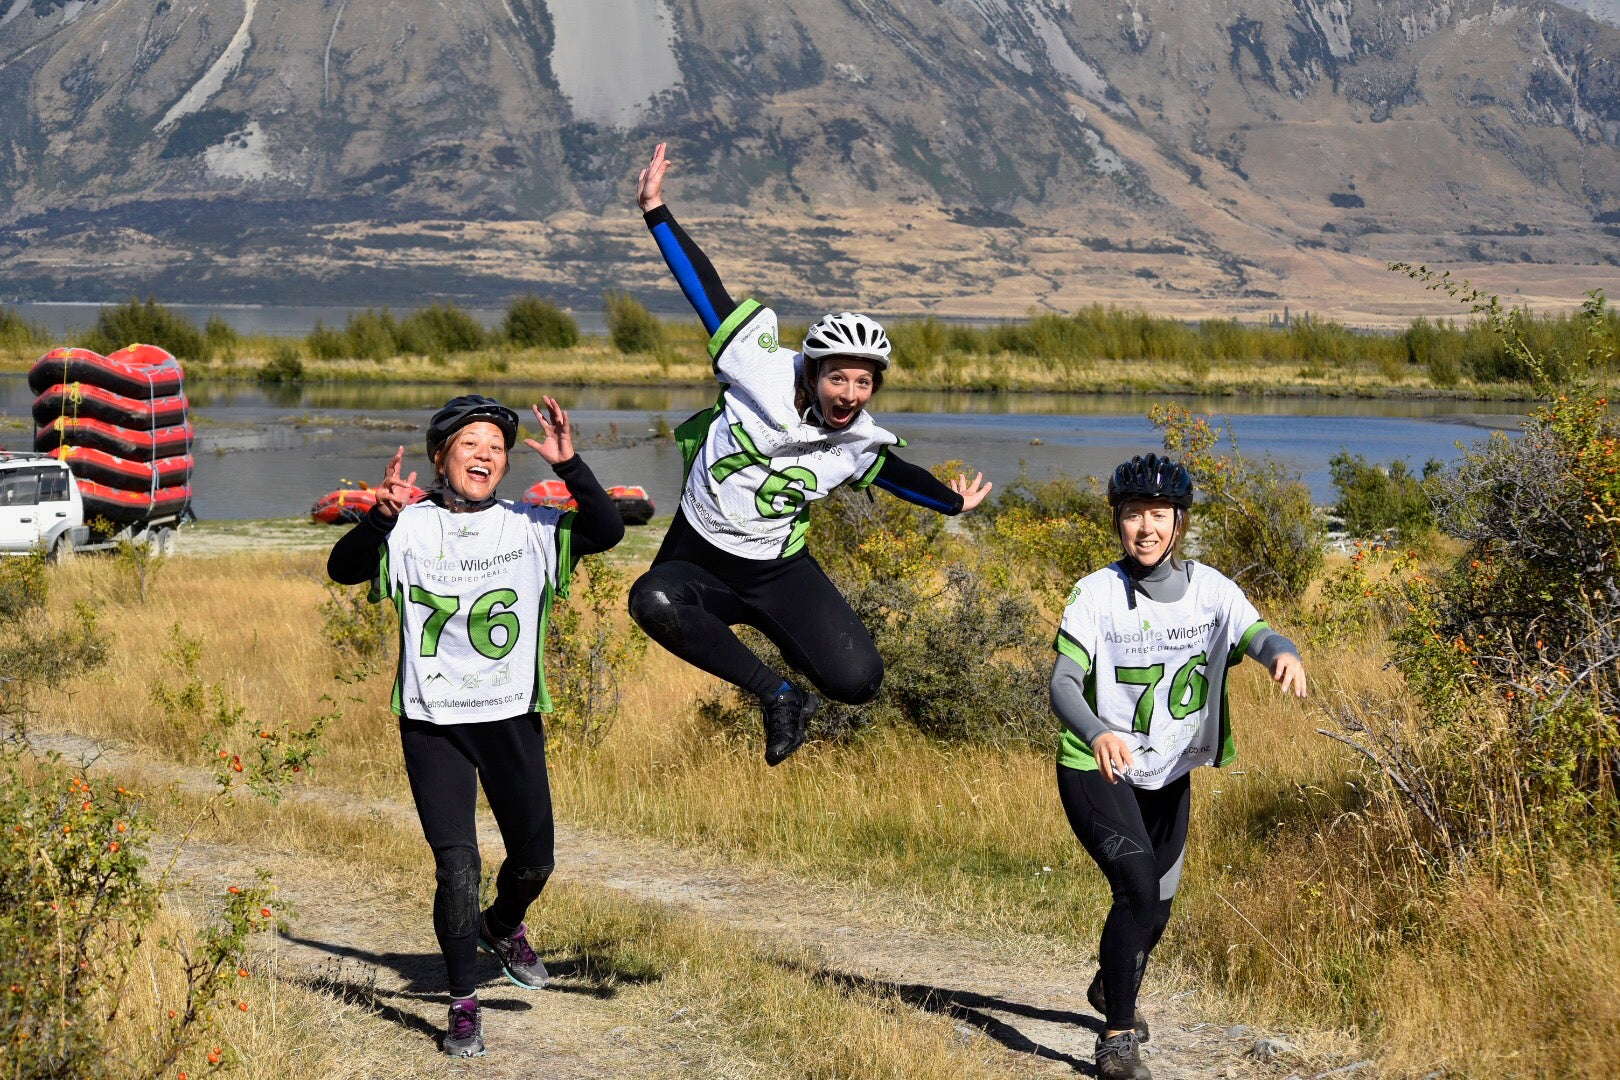 AW Adventure Race ENTRIES OPEN MAY 1st 2019